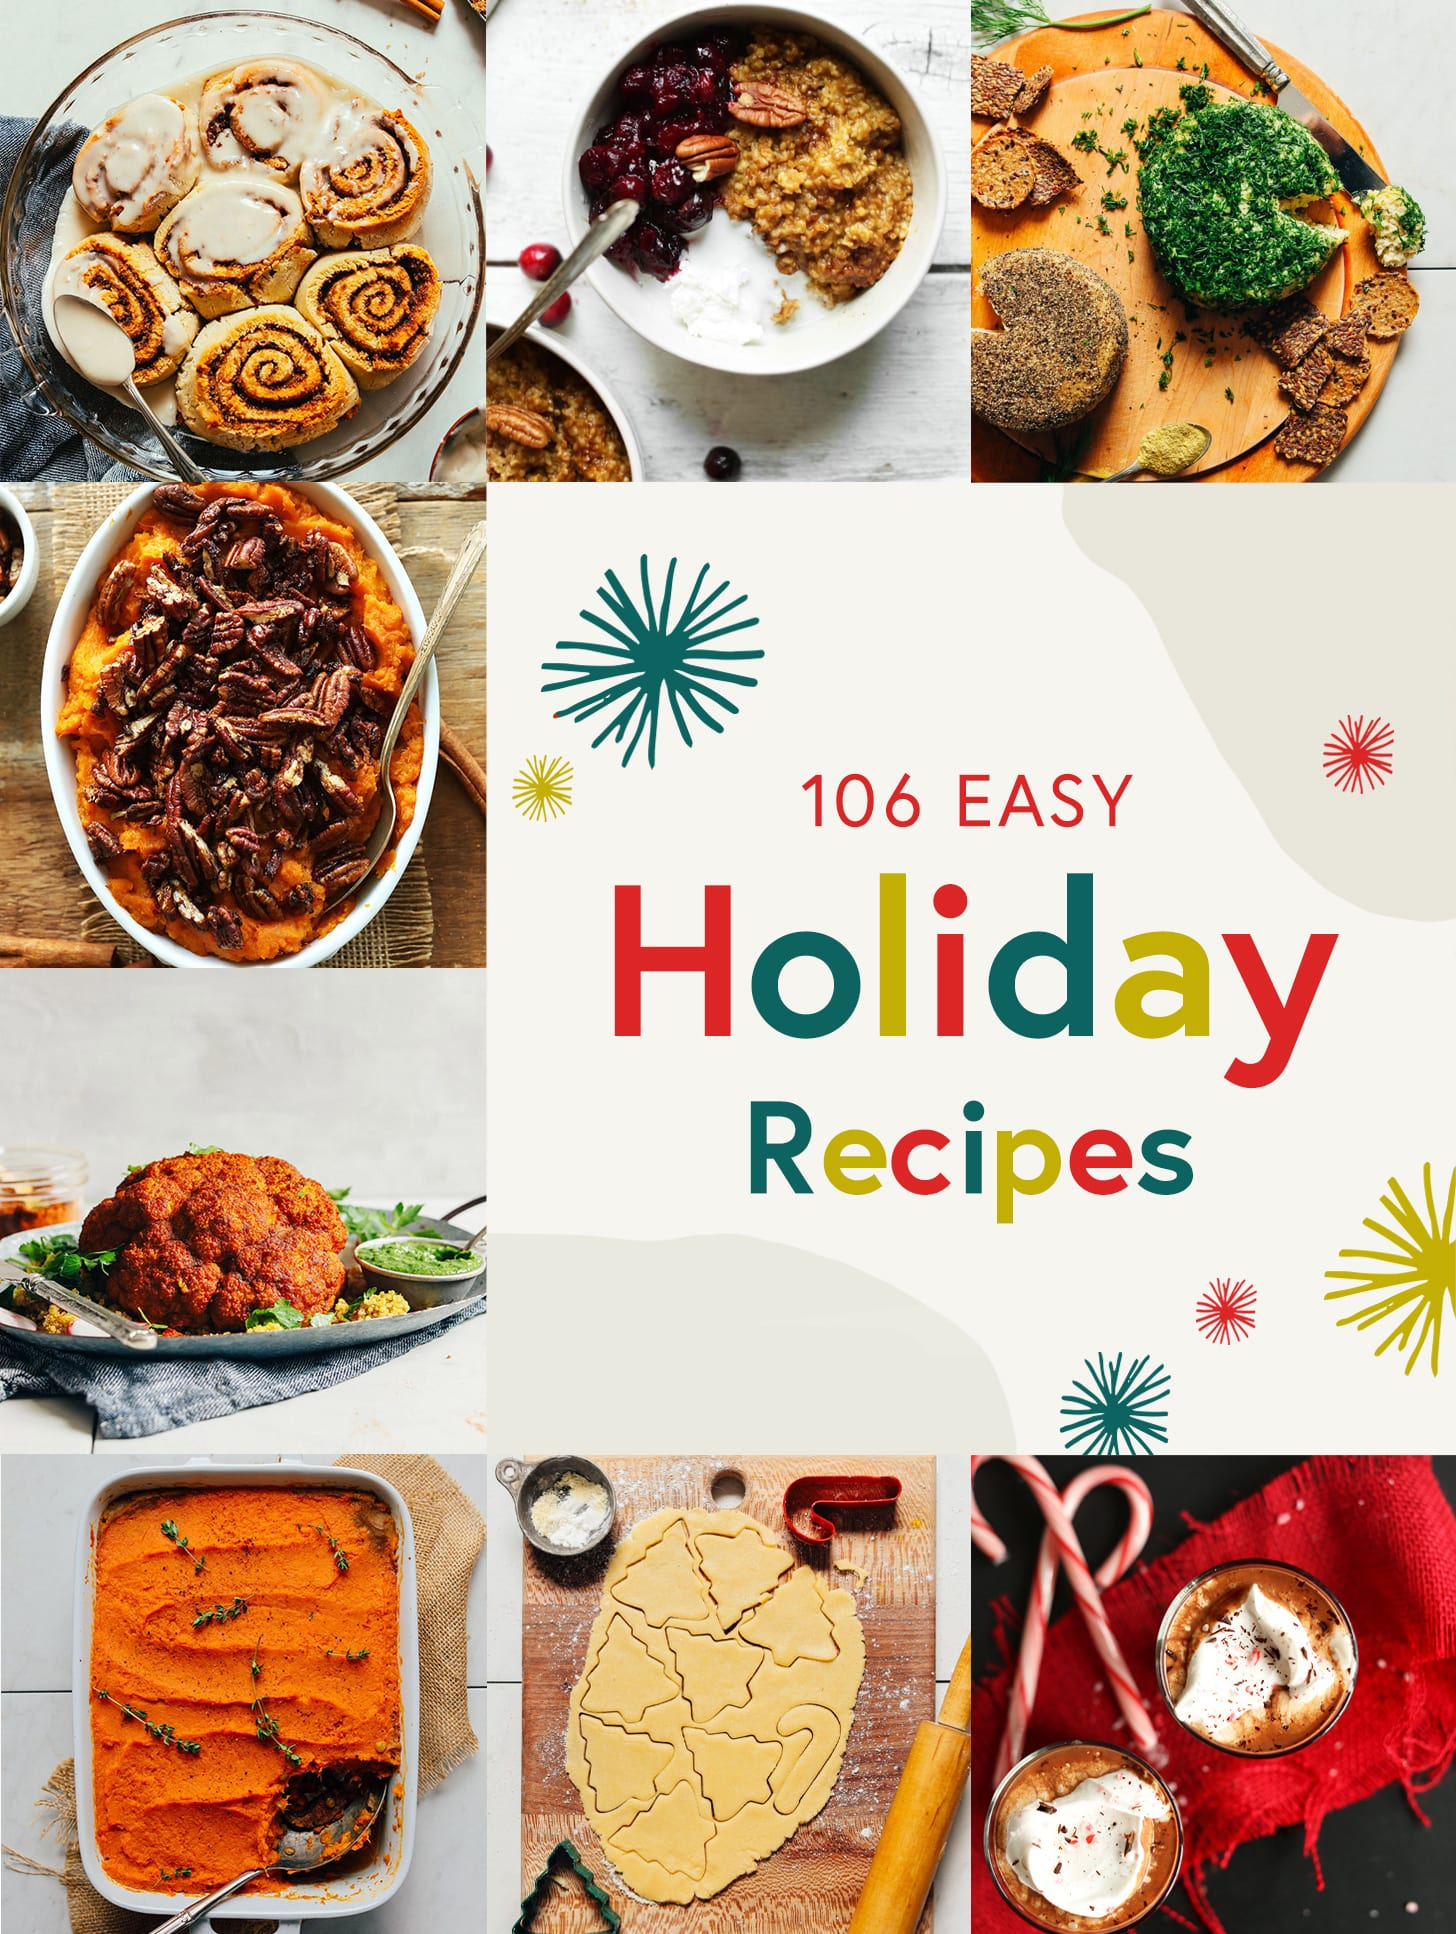 Collection of recipe photos for our round up of 106 Easy Holiday Recipes